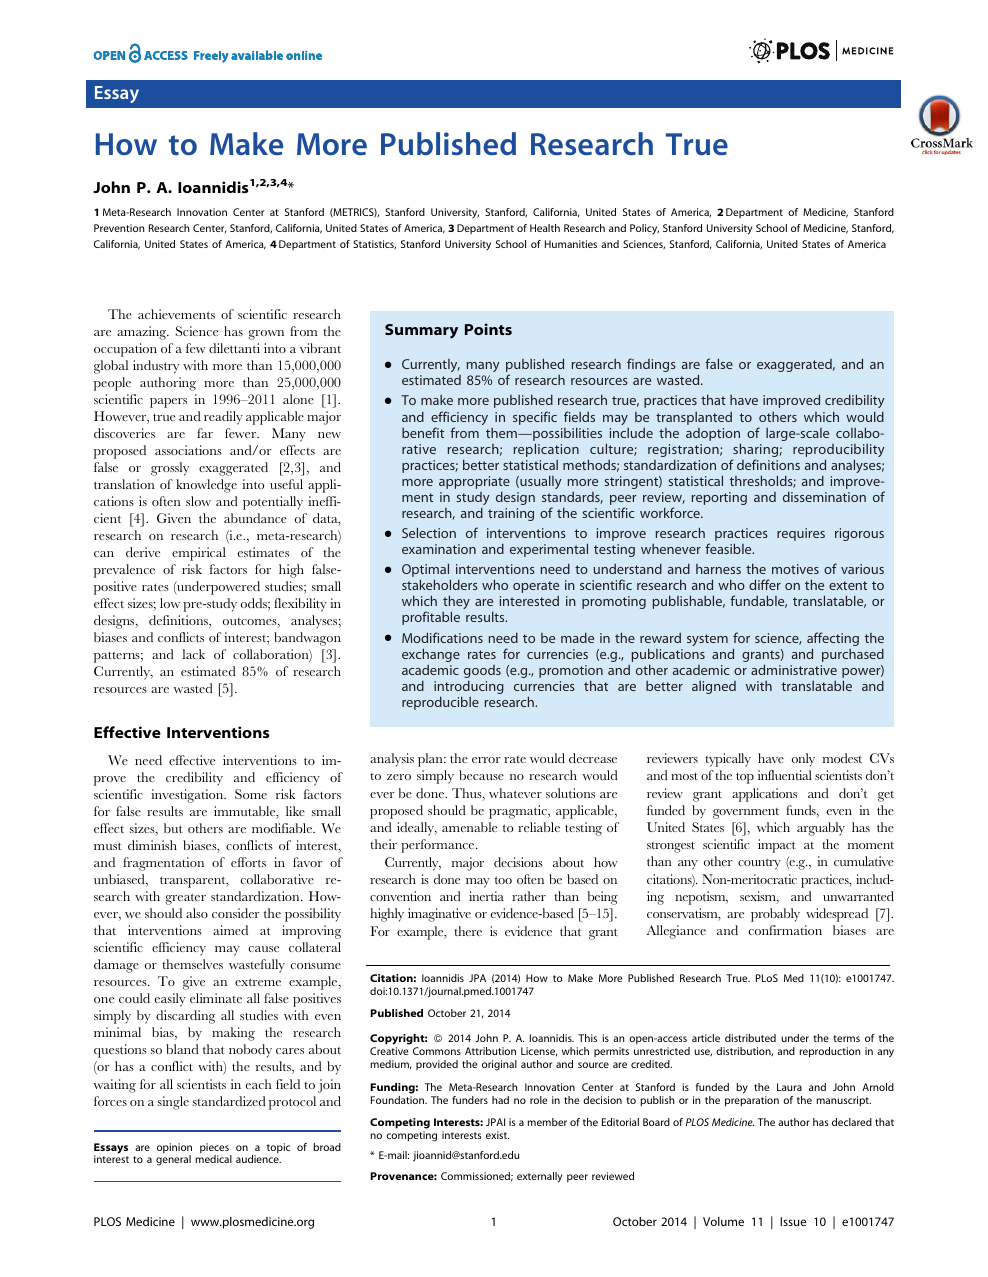 How to Make More Published Research True – topic of research